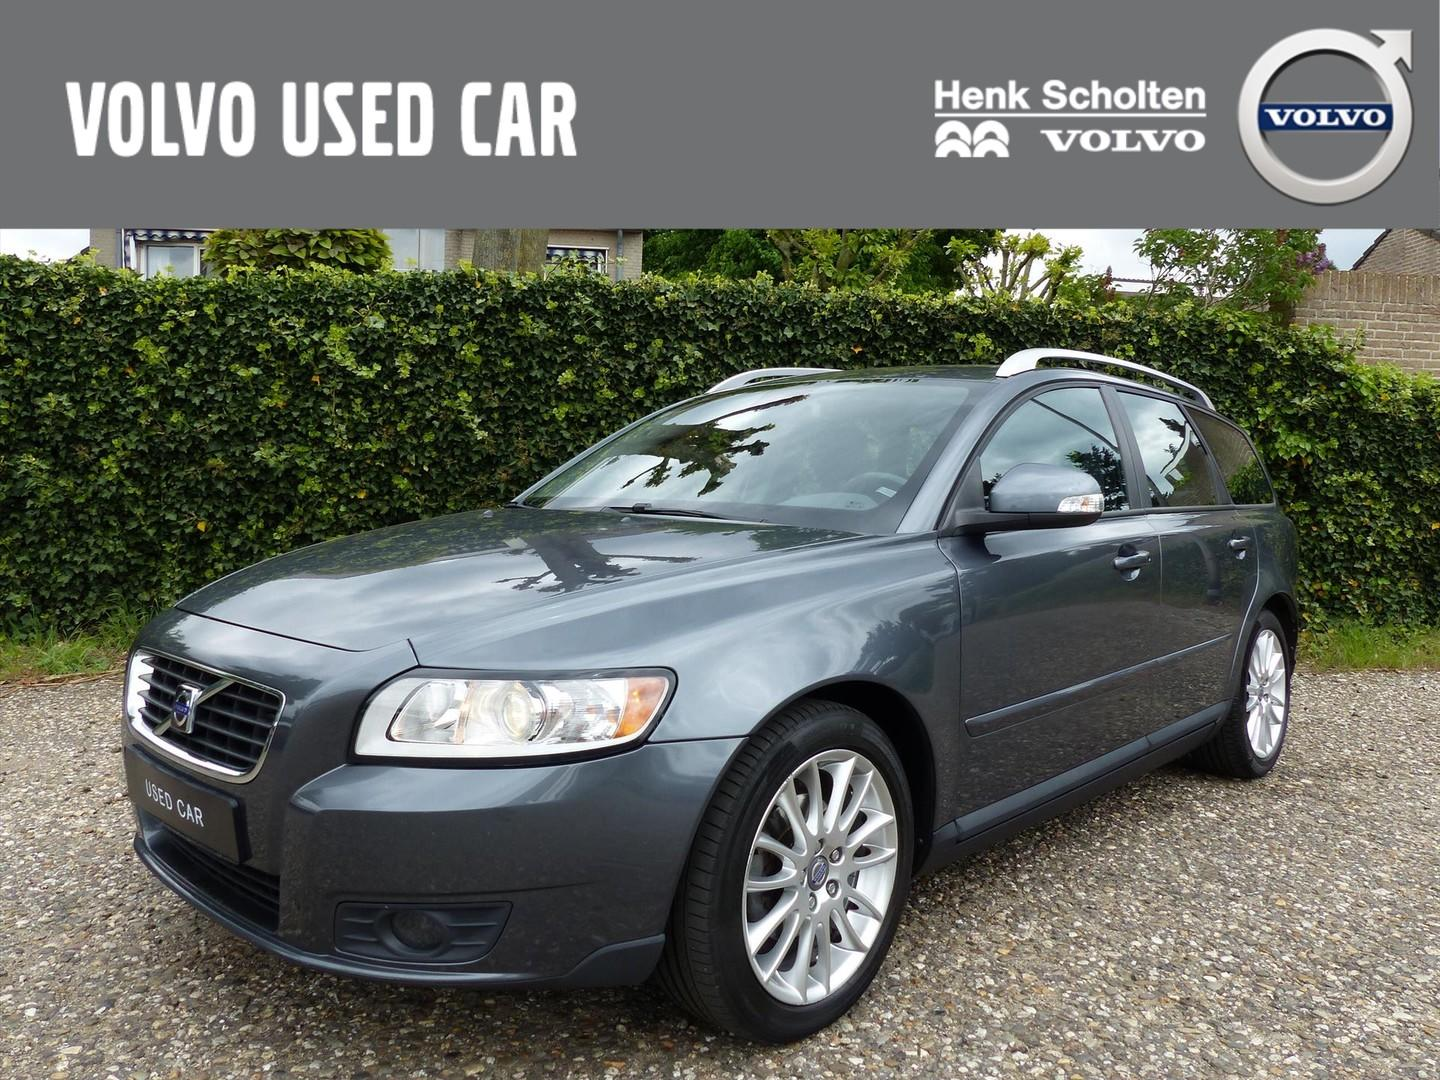 Volvo V50 1.8 edition, climate control, trekhaak, cruise control